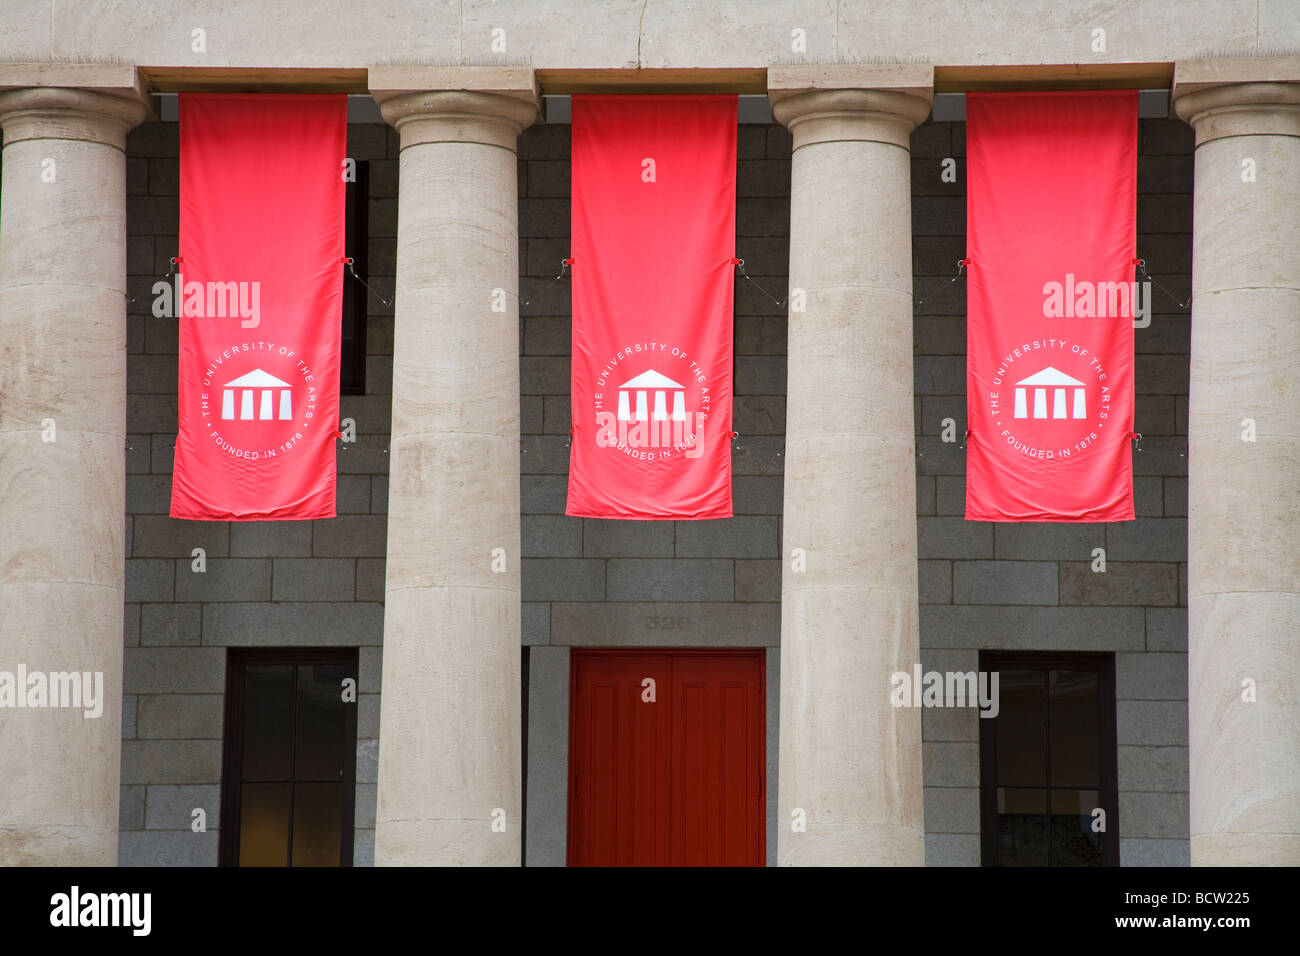 Banners hanging on a building University of the Arts Avenue Of The Arts Center City Broad Street Philadelphia Pennsylvania - Stock Image